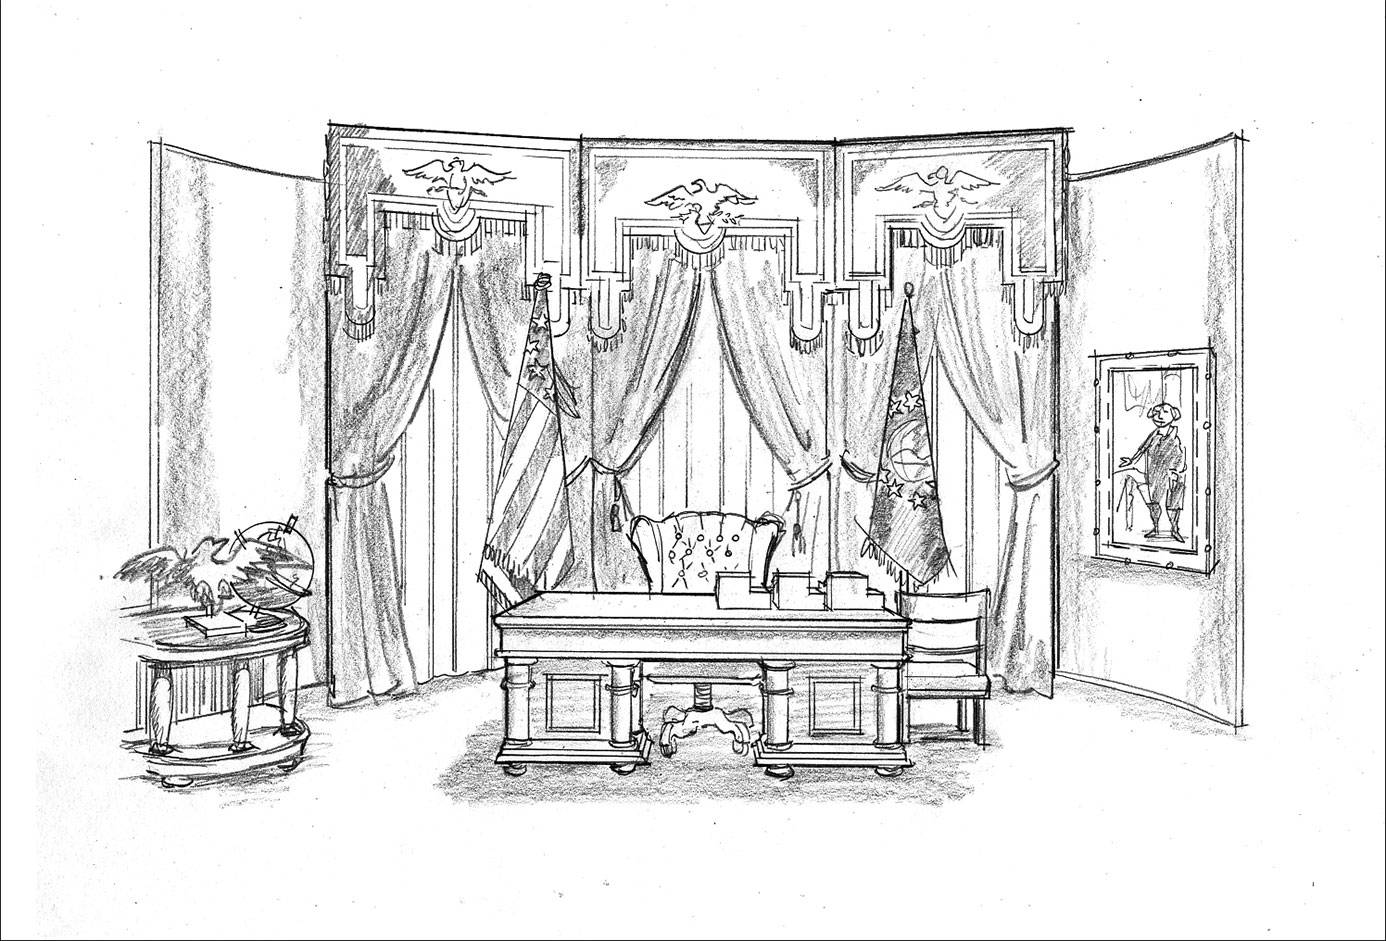 Concept Illustration for commercial set design. Oval Office theme. Client: Neil Wyzanowski. hand-drawn